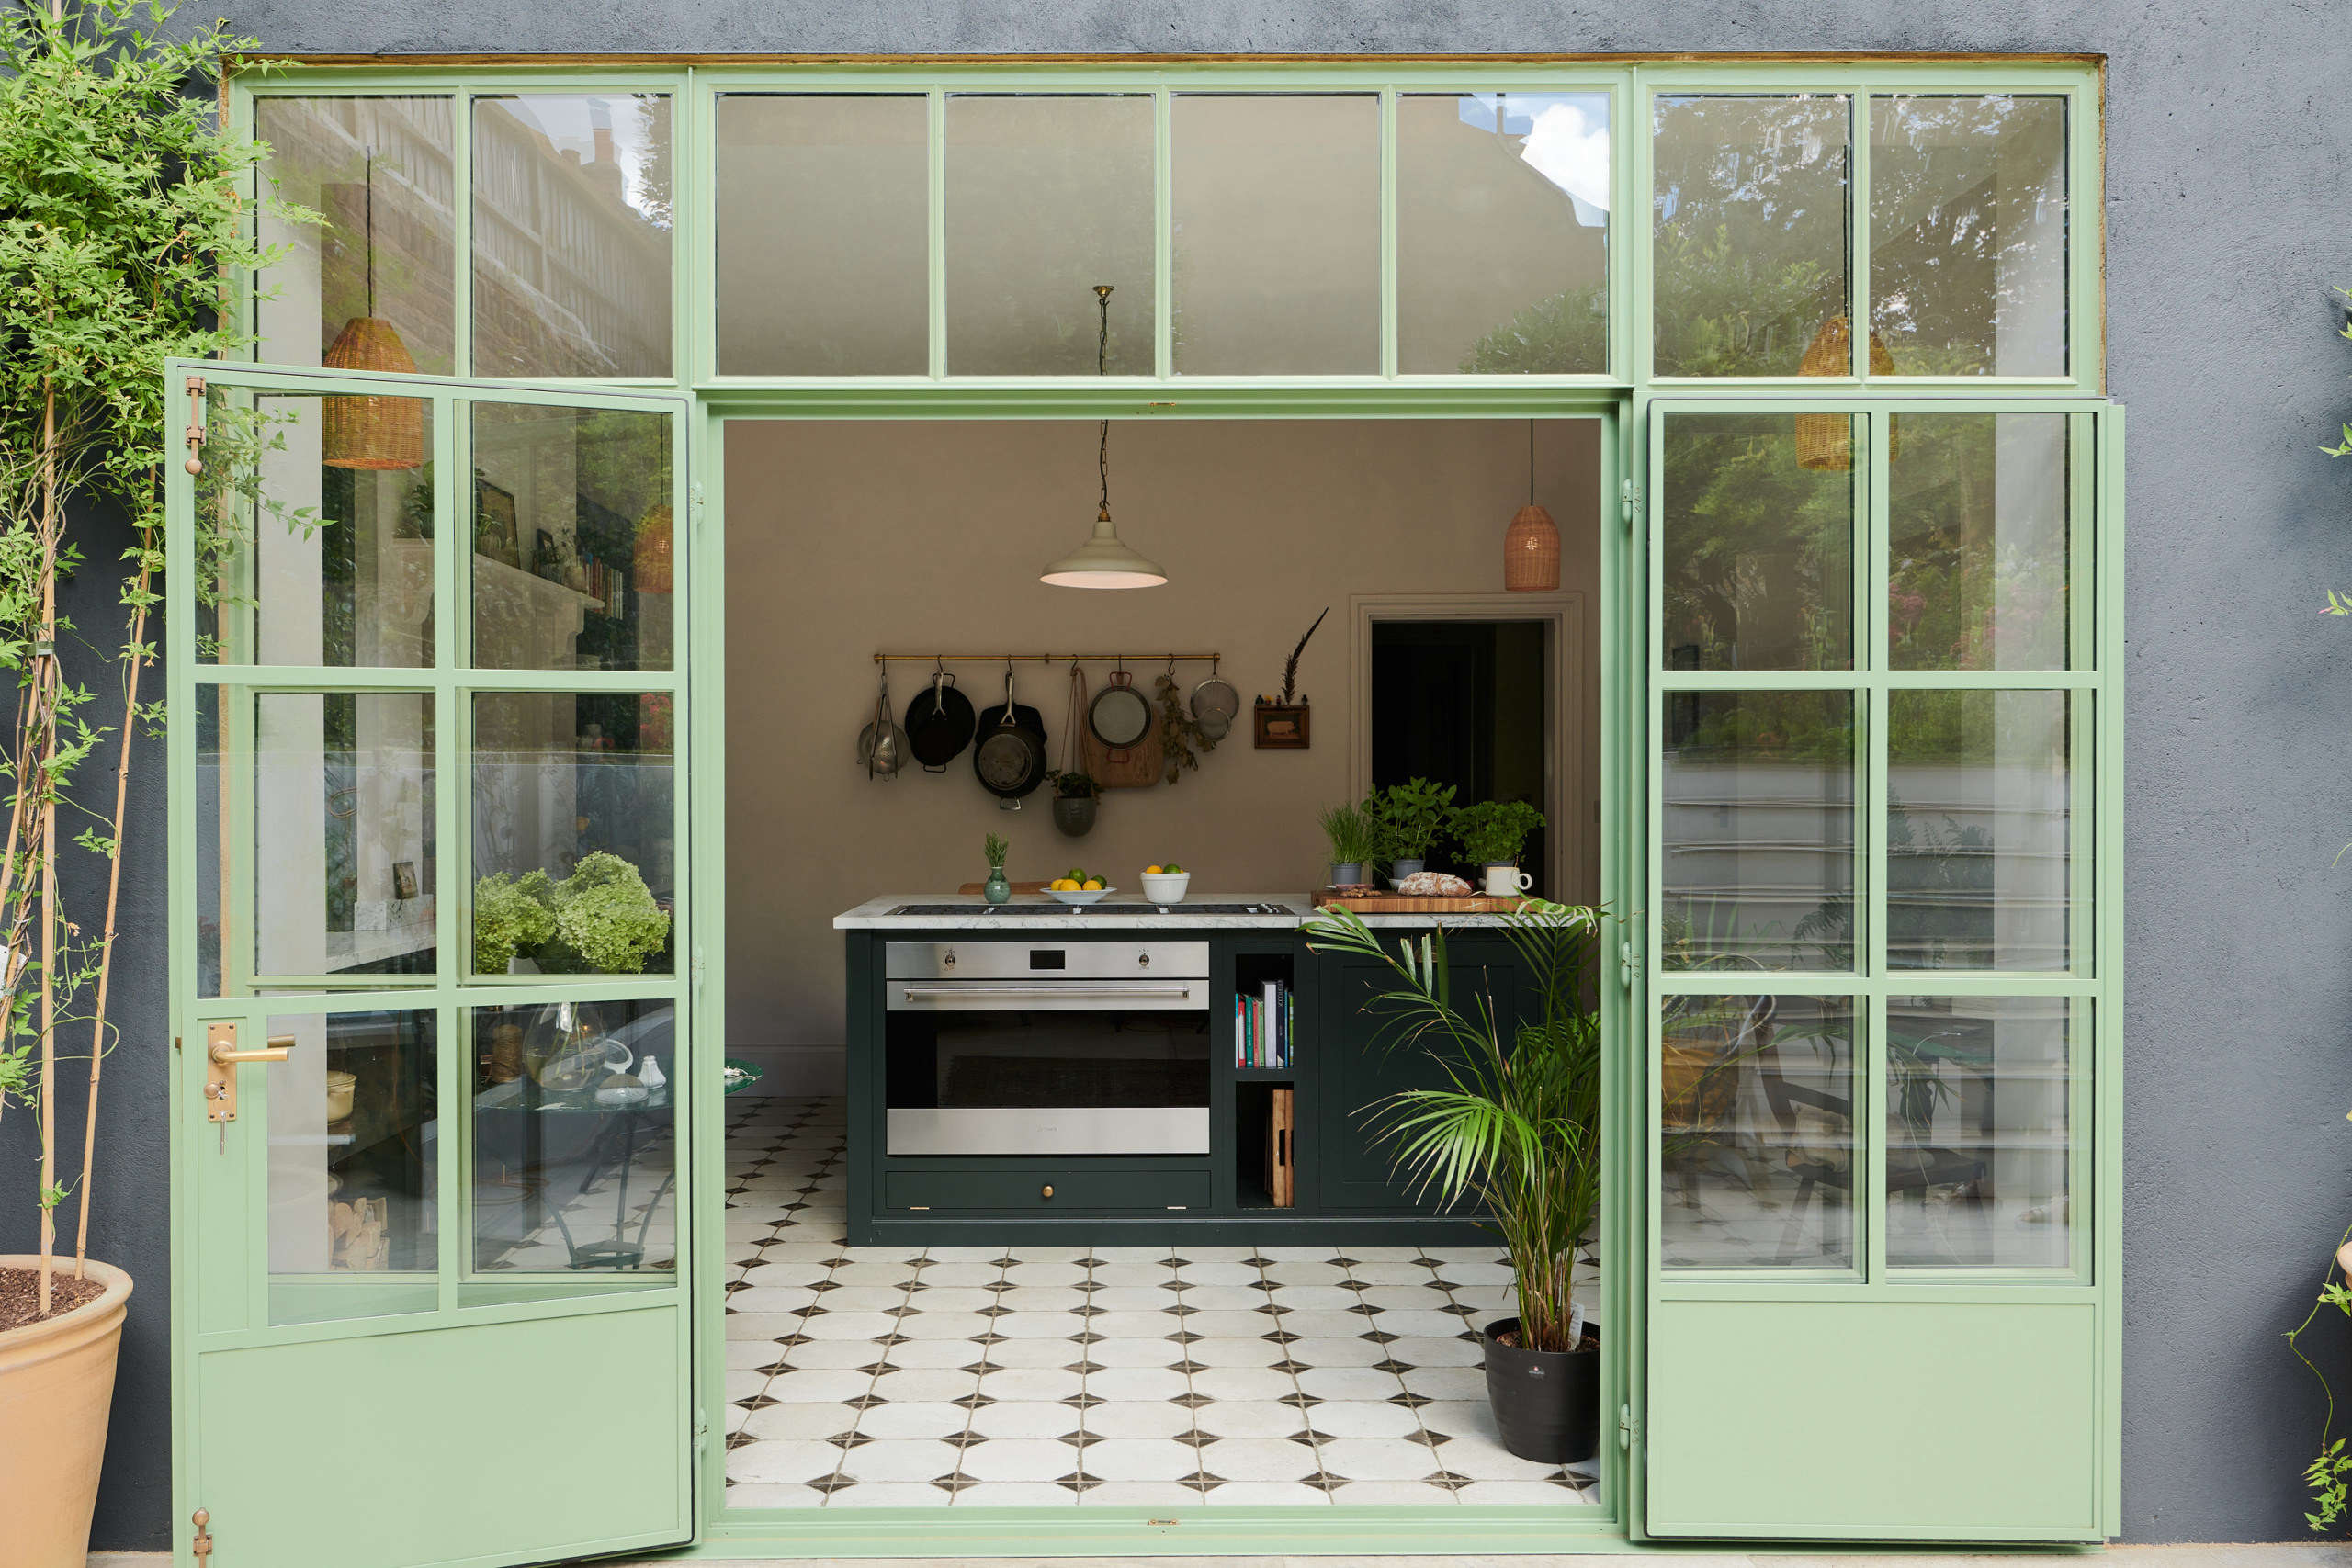 Kitchen of the Week: 'Wes Anderson Meets Provencal' in West London - Remodelista